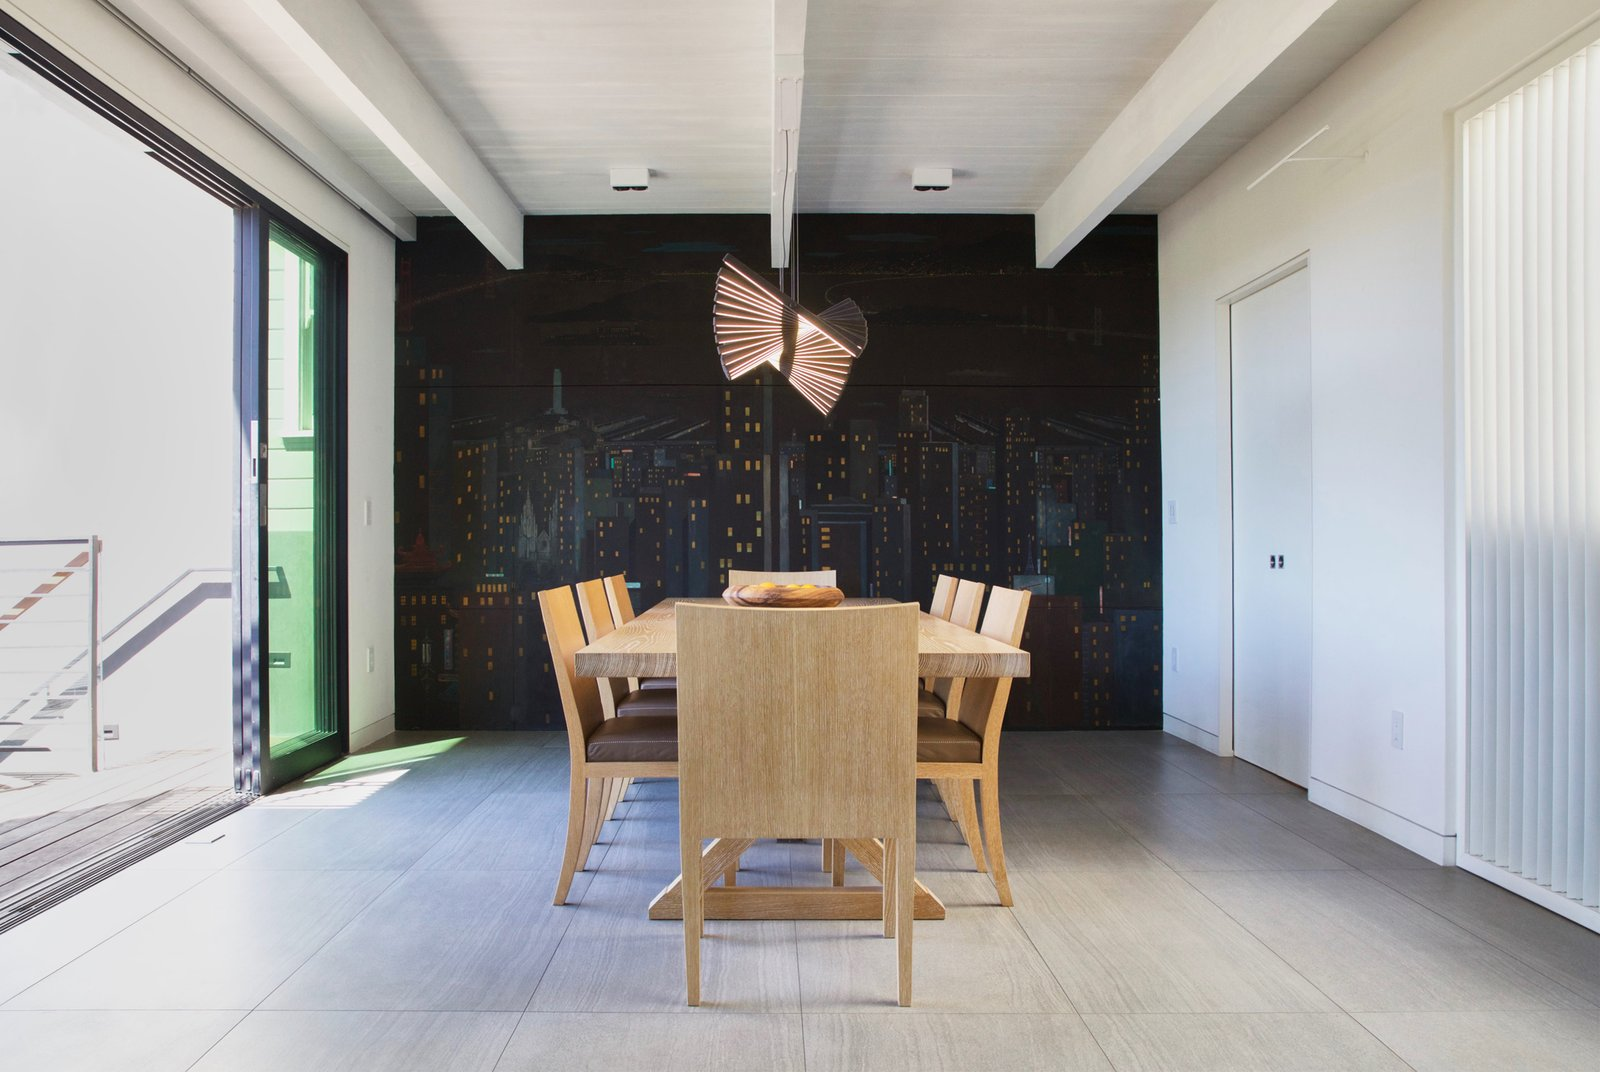 Dining Room, Track Lighting, Table, Chair, Accent Lighting, and Ceramic Tile Floor Dining Room - operable louvers at stair, original Jose Moya del Pino cityscape mural, Vibia Rythm light, Hermés table and chairs, Fleetwood sliding doors to deck  Lyon Residence by Diego Pacheco Design Practice